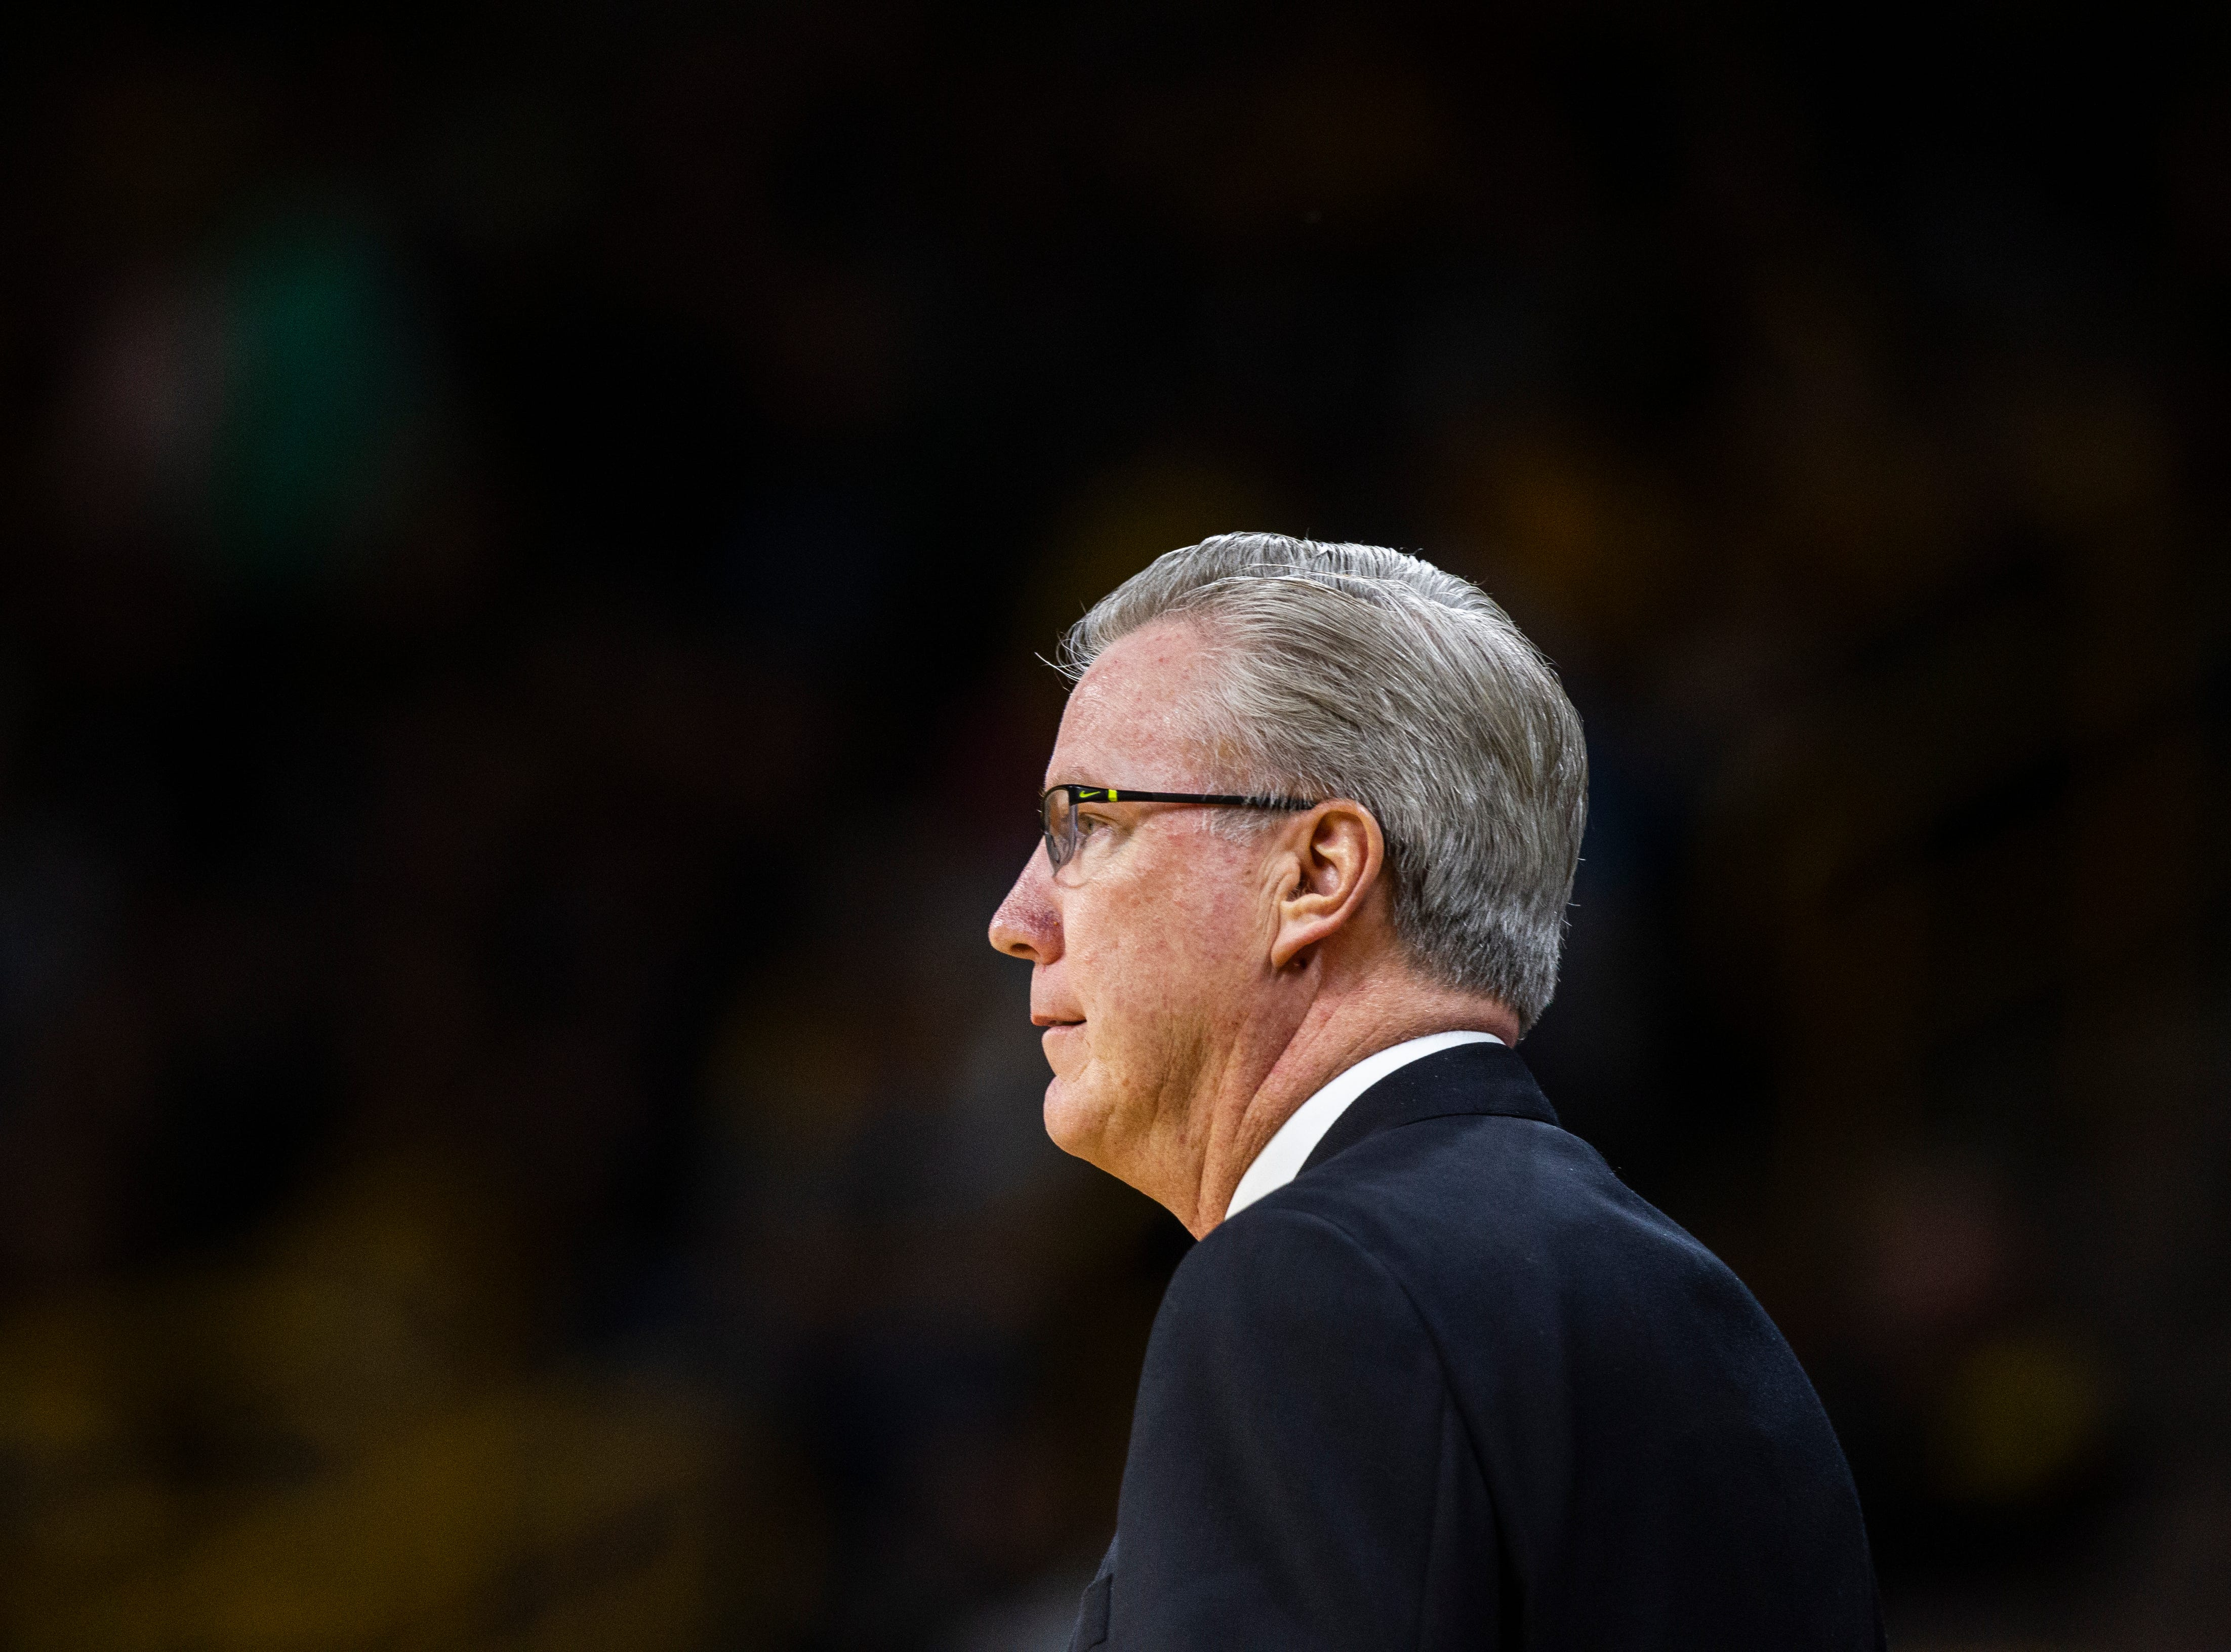 Iowa men's basketball head coach Fran McCaffery watches on during a men's basketball exhibition game on Sunday, Nov. 4, 2018, at Carver-Hawkeye Arena in Iowa City.